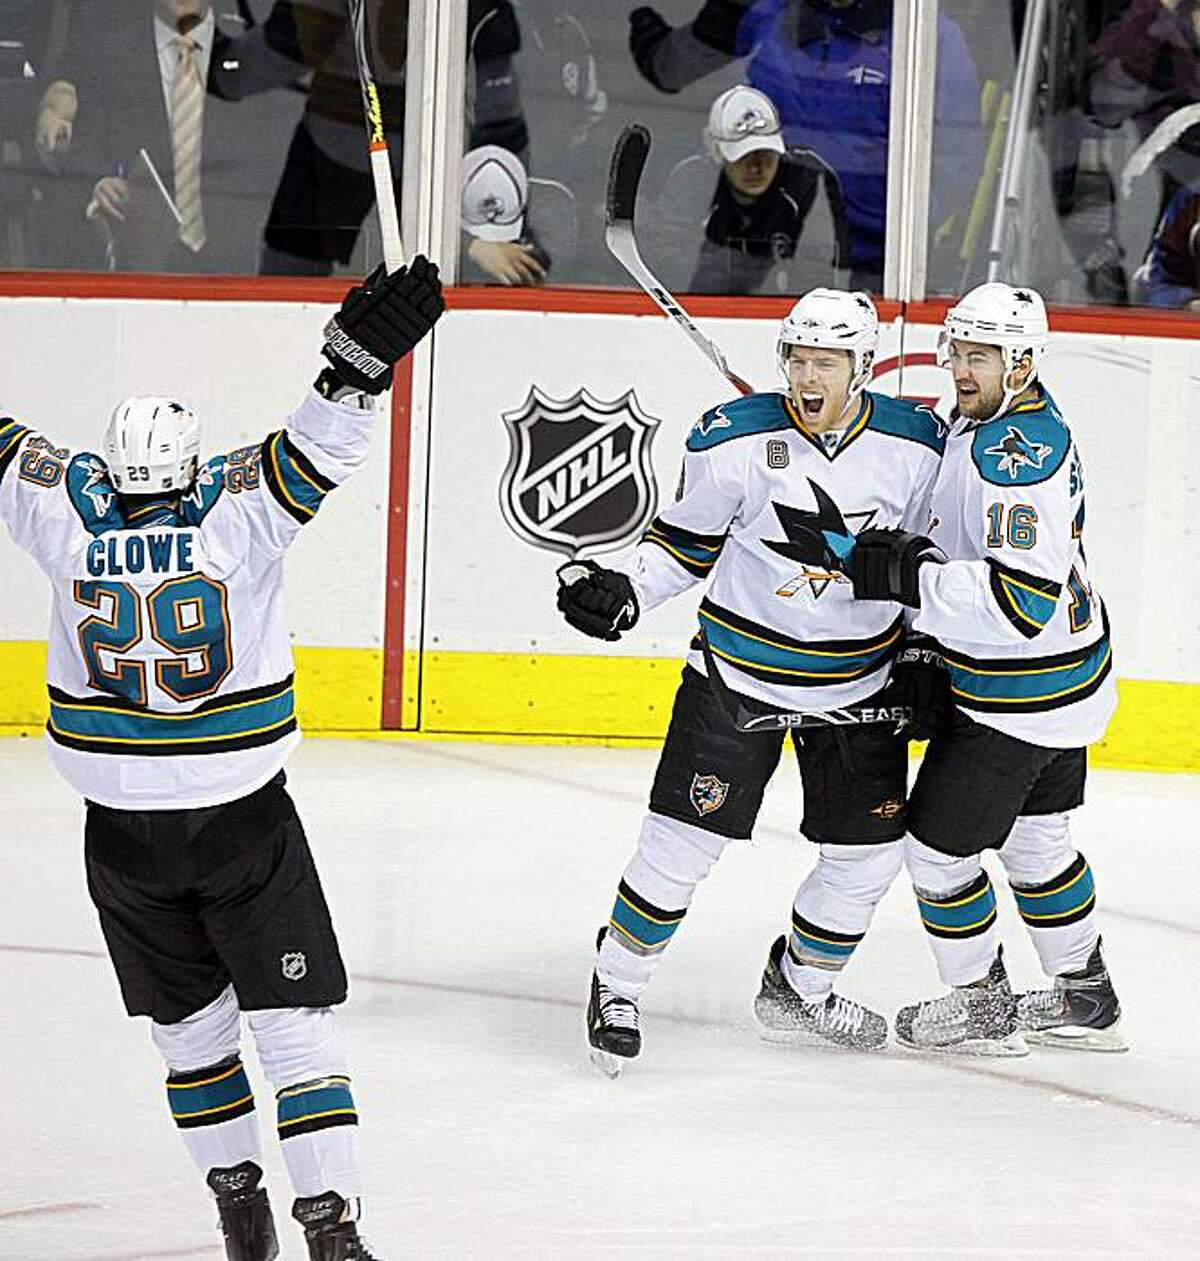 DENVER, CO - APRIL 24 : Joe Pavelski #8 of the San Jose Sharks celebrates with teammates Devin Setoguchi #16 and Ryane Clowe #29 after Pavelski scored what would turn out to be the game winner in the third period of Game Six of the Western Conference Quarterfinals during the 2010 NHL Stanley Cup Playoffs at the Pepsi Center on April 24, 2010 in Denver, Colorado. The Sharks won the game 5-2 and took the series 4-2.